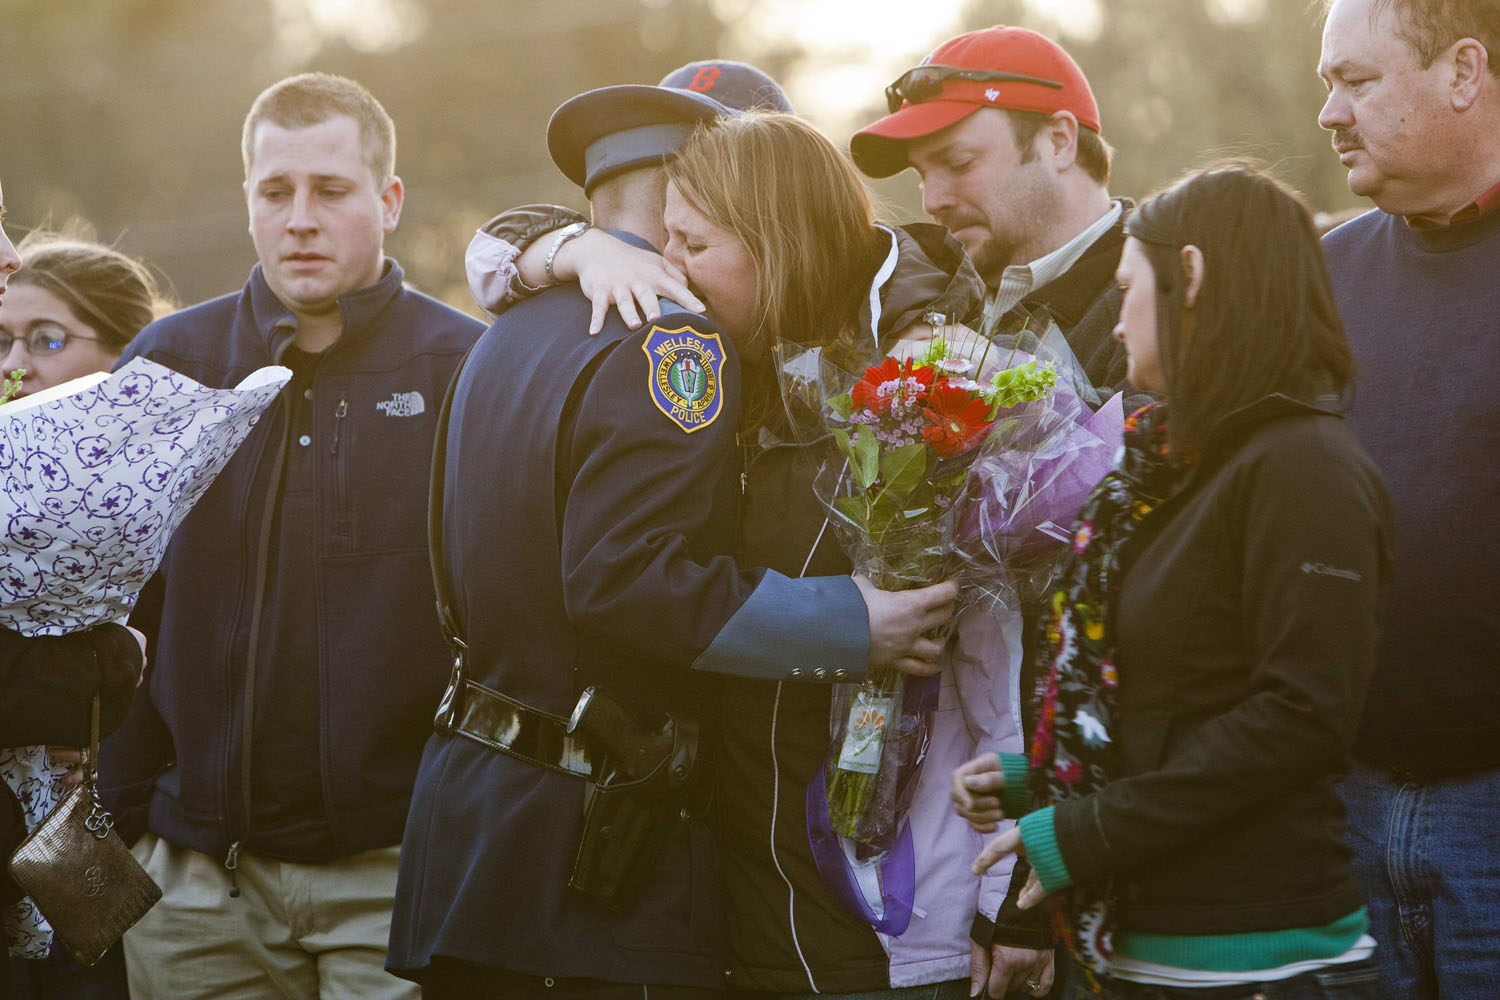 April 20, 2013. Nicole Collier Lynch, sister of slain MIT police officer Sean Collier, hugs a Wellesley police officer during a vigil at the Town Common in Wilmington, Massachusetts. Collier, 26, was shot multiple times in his car on as Boston Marathon bombing suspects Dzhokhar Tsarnaev and his brother Tamerlan tried to evade capture.